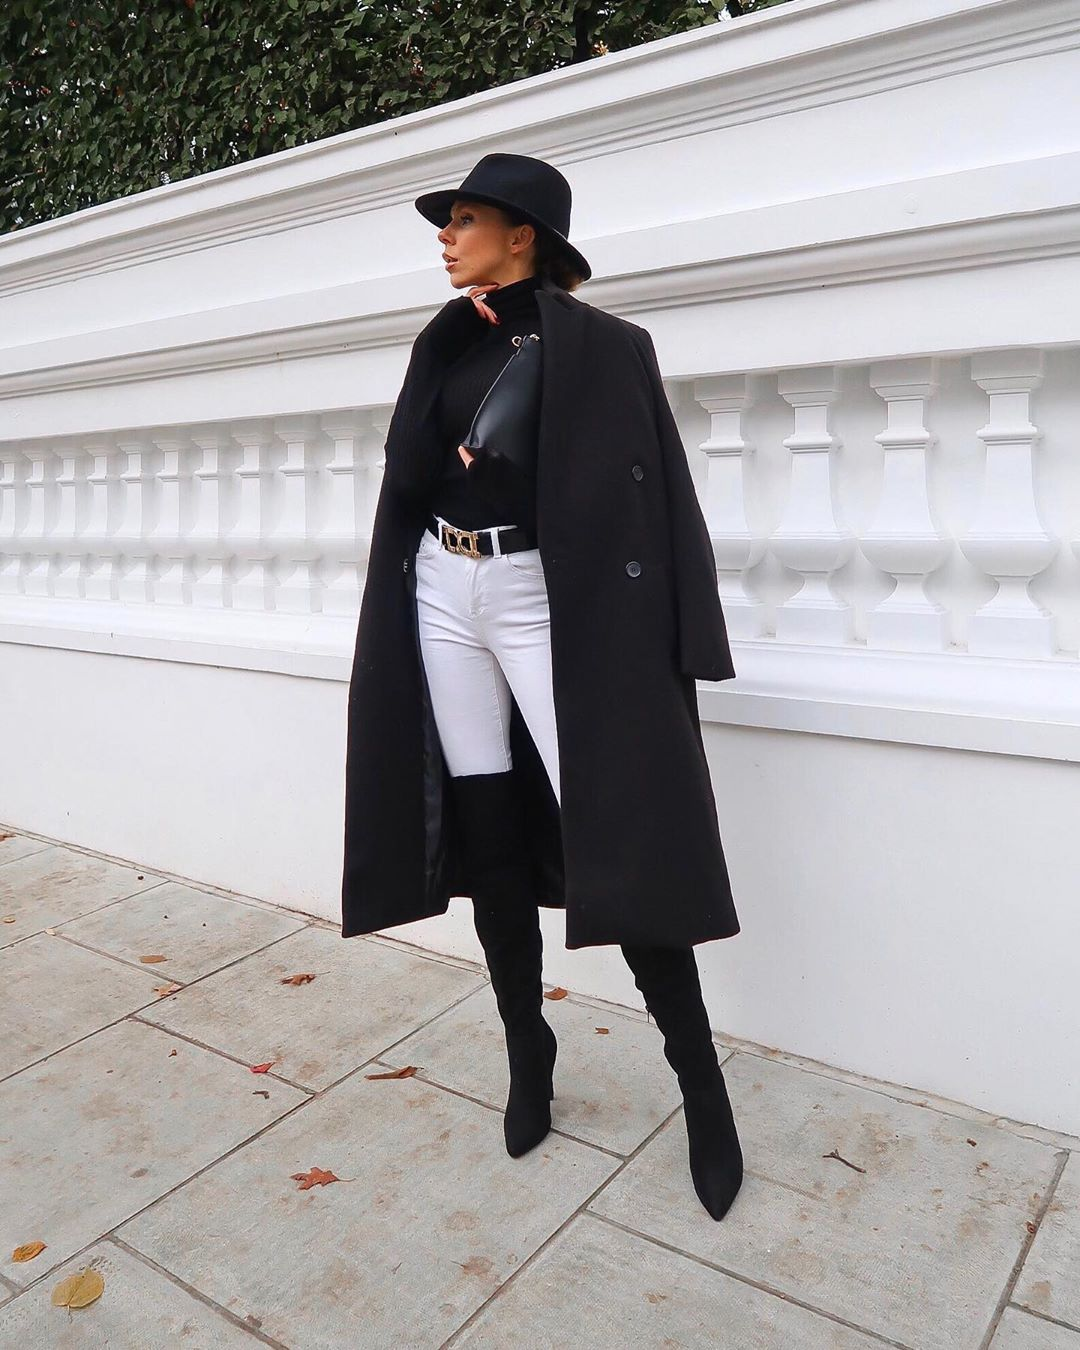 Model wears a black coat, knee high boots, hat and white jeans on London street